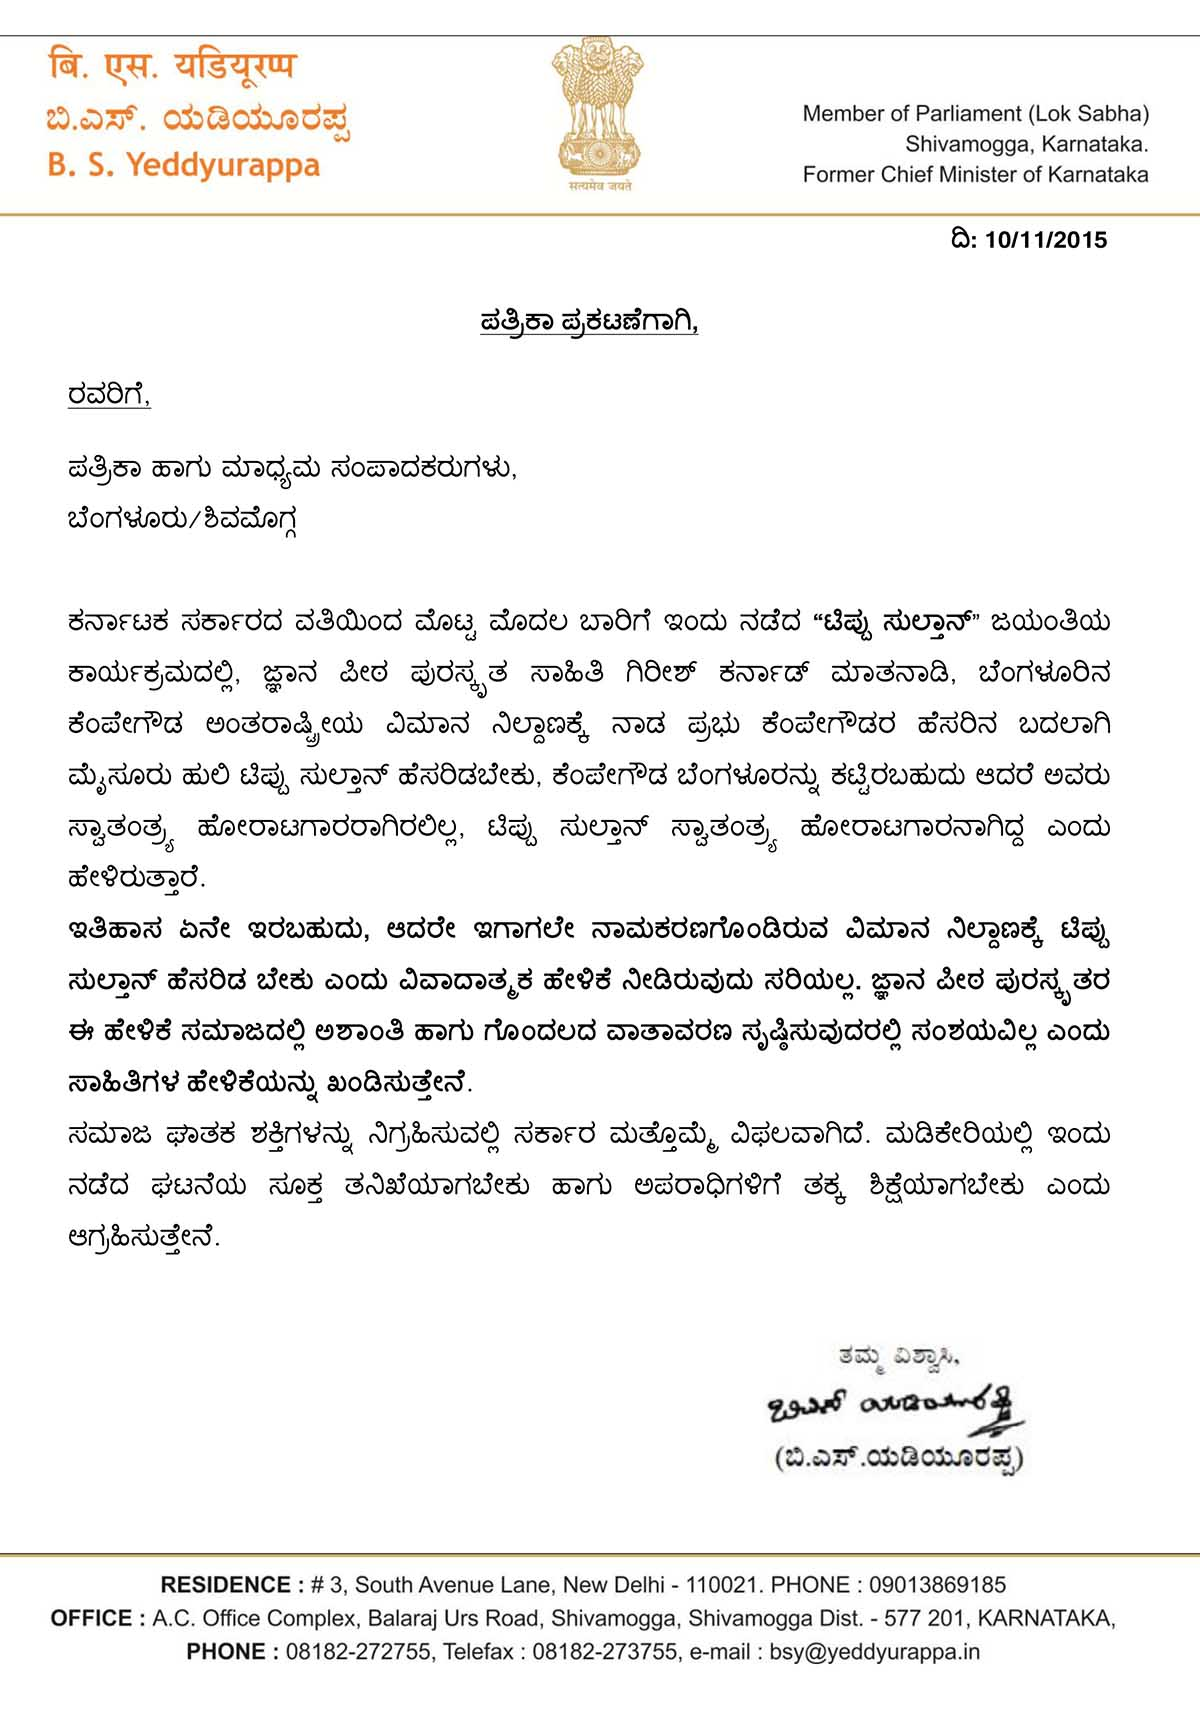 BSY Press Note on Tipu Jayanti 10-11-2015